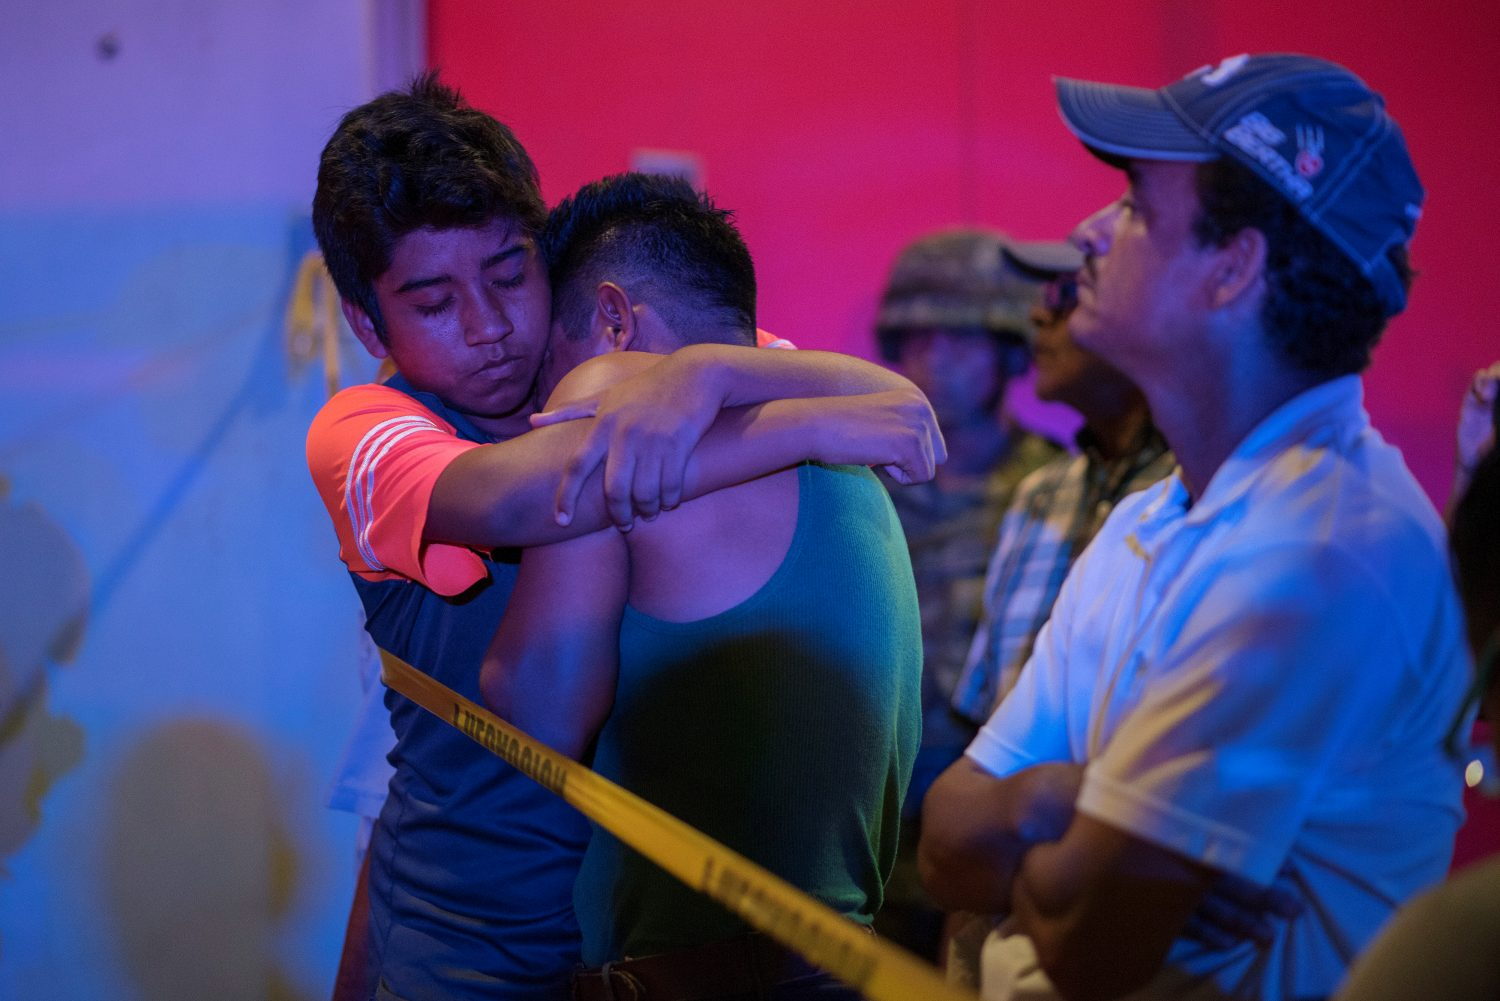 A man is comforted at a crime scene following a deadly attack at a bar by unknown assailants in Coatzacoalcos, Mexico August 28, 2019. REUTERS/Angel Hernandez